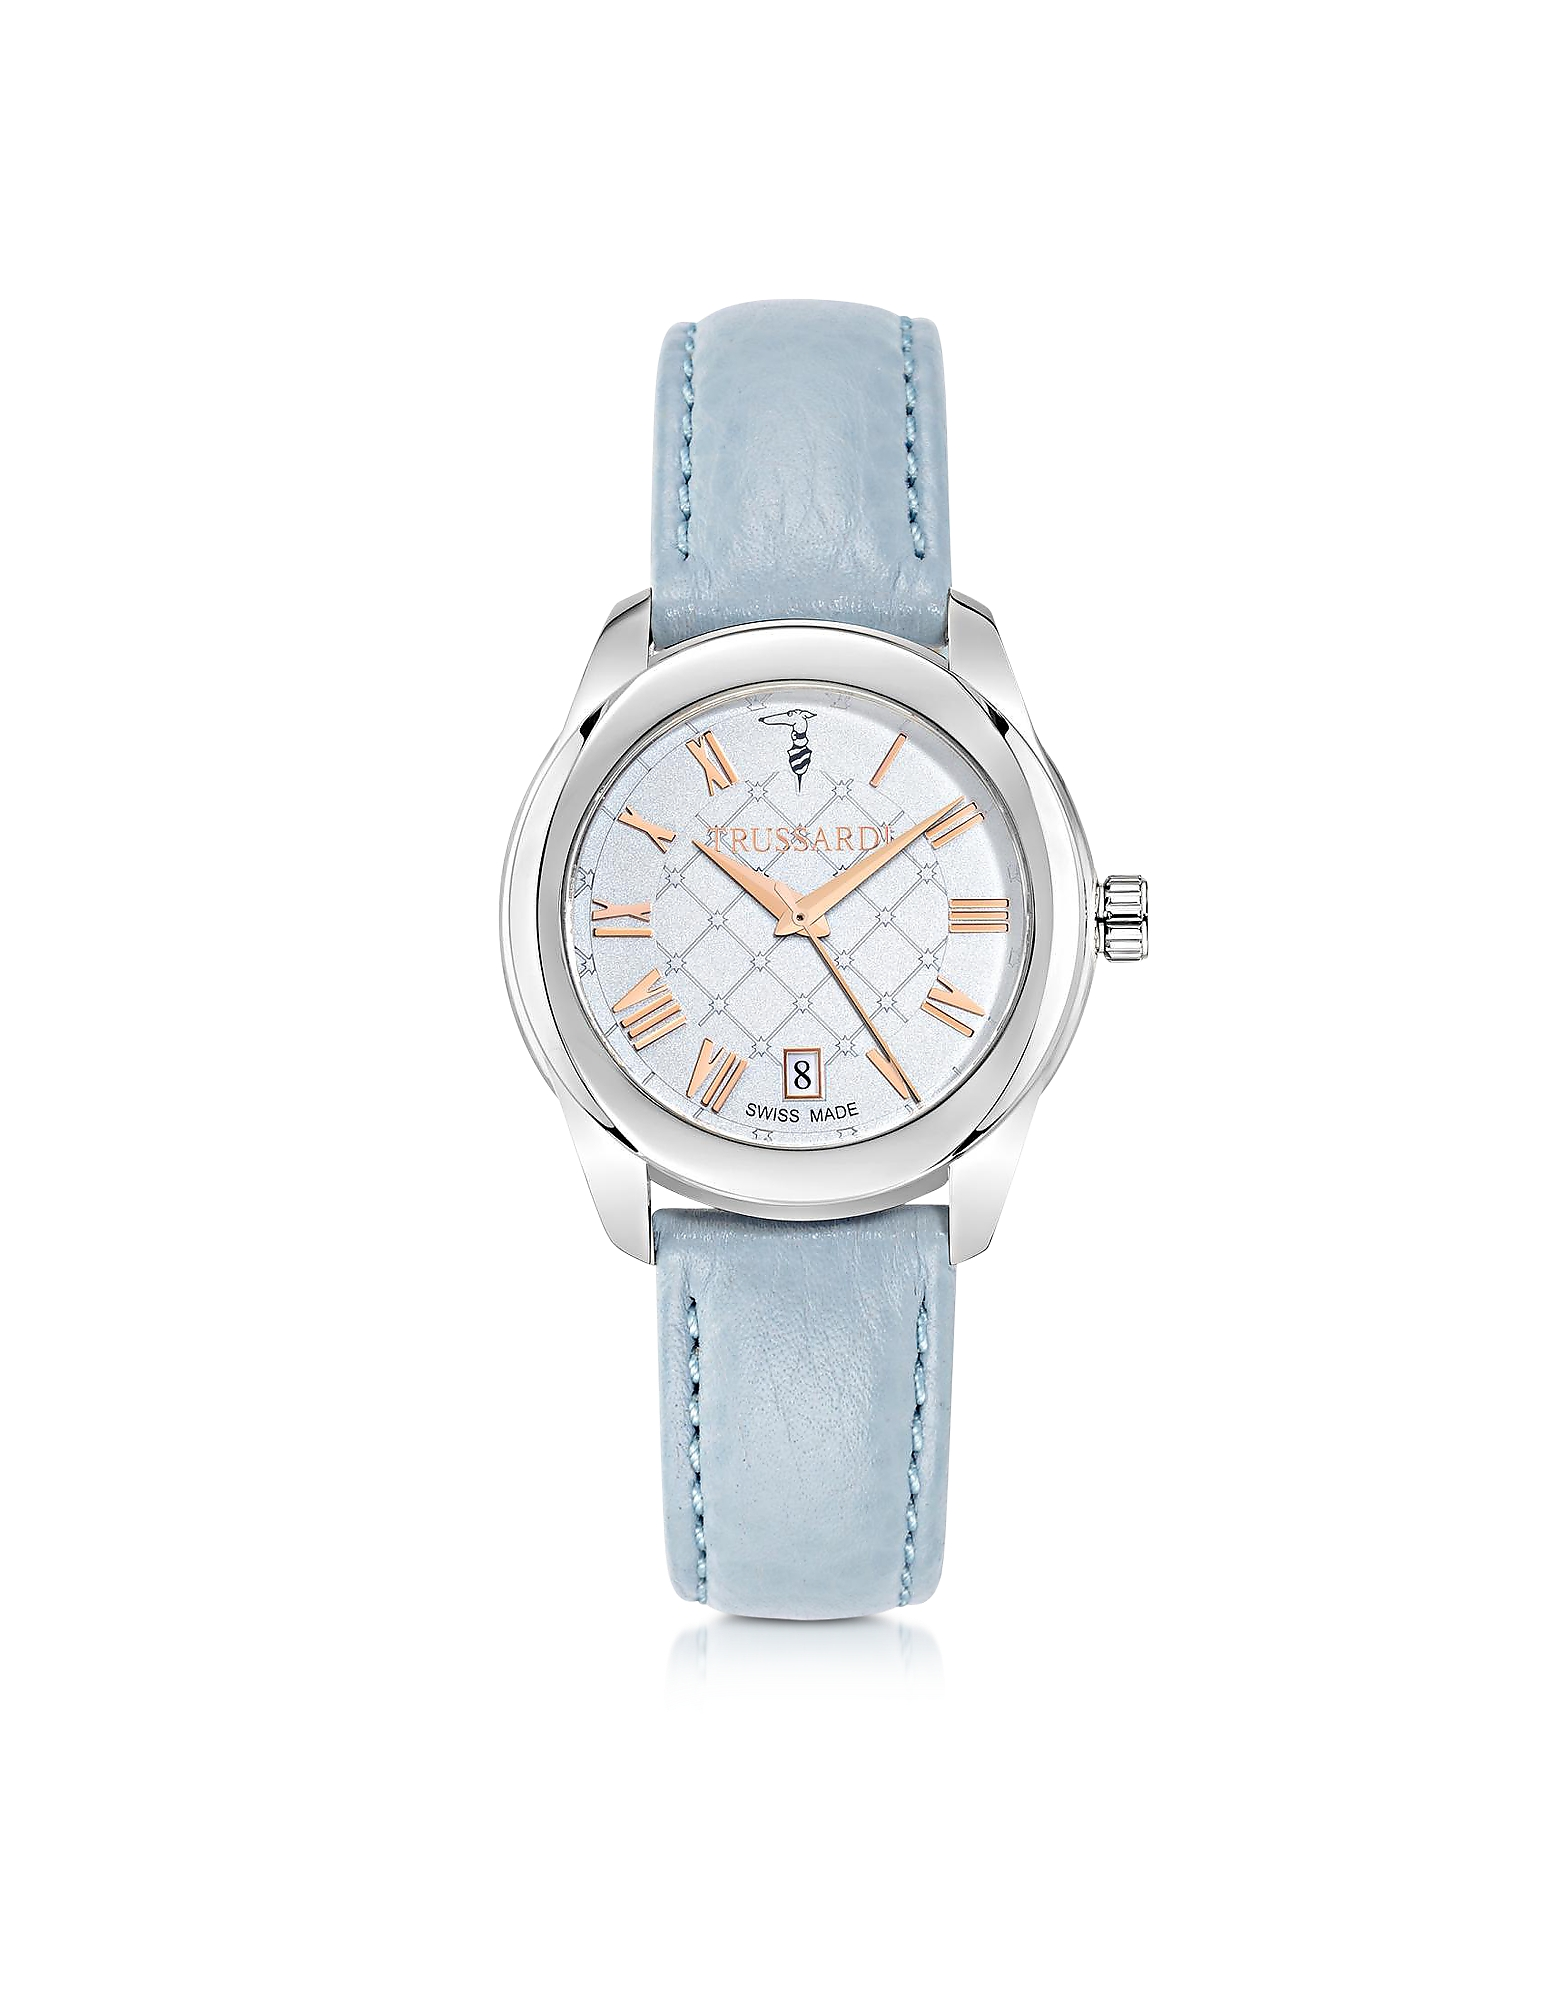 Trussardi  Women's Watches T01 Lady Stainless Steel and Blue Leather Women's Watch